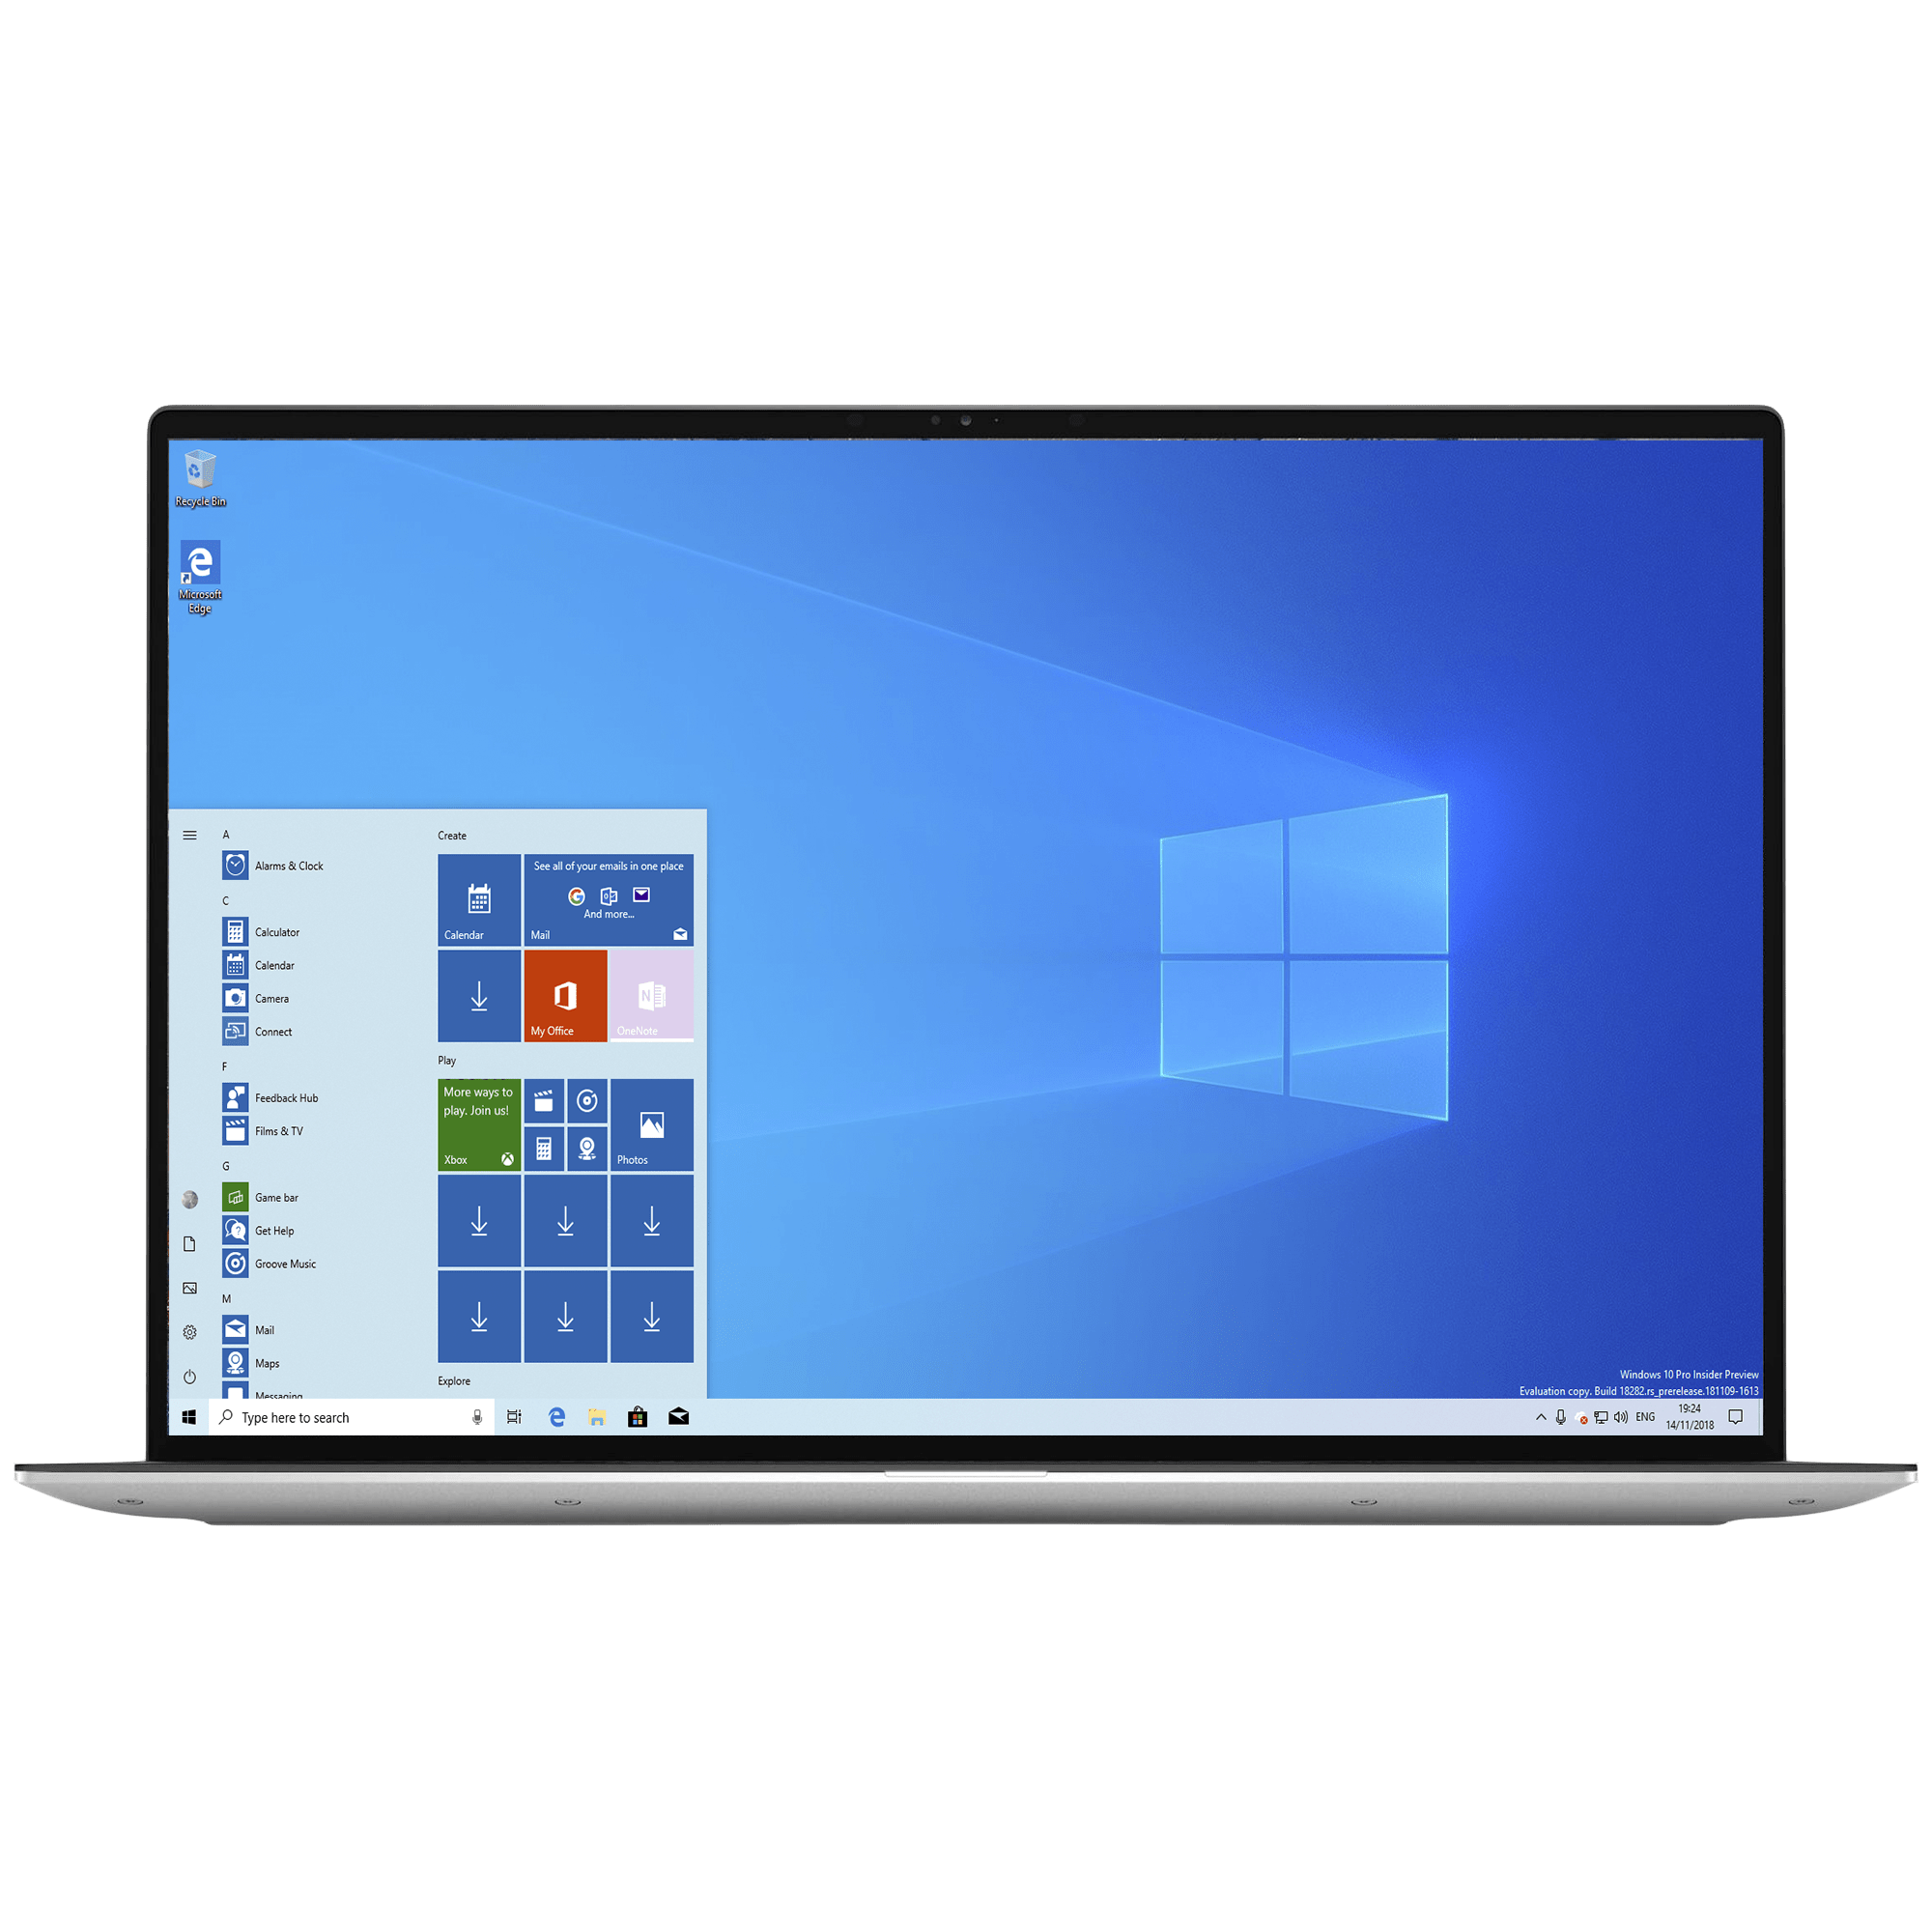 Dell XPS 9310 (D560032WIN9S) Core i5 11th Gen Windows 10 Home Thin and Light Laptop (8GB RAM, 512GB SSD, Intel Iris Xe Graphics, MS Office, 34.03cm, Platinum Silver)